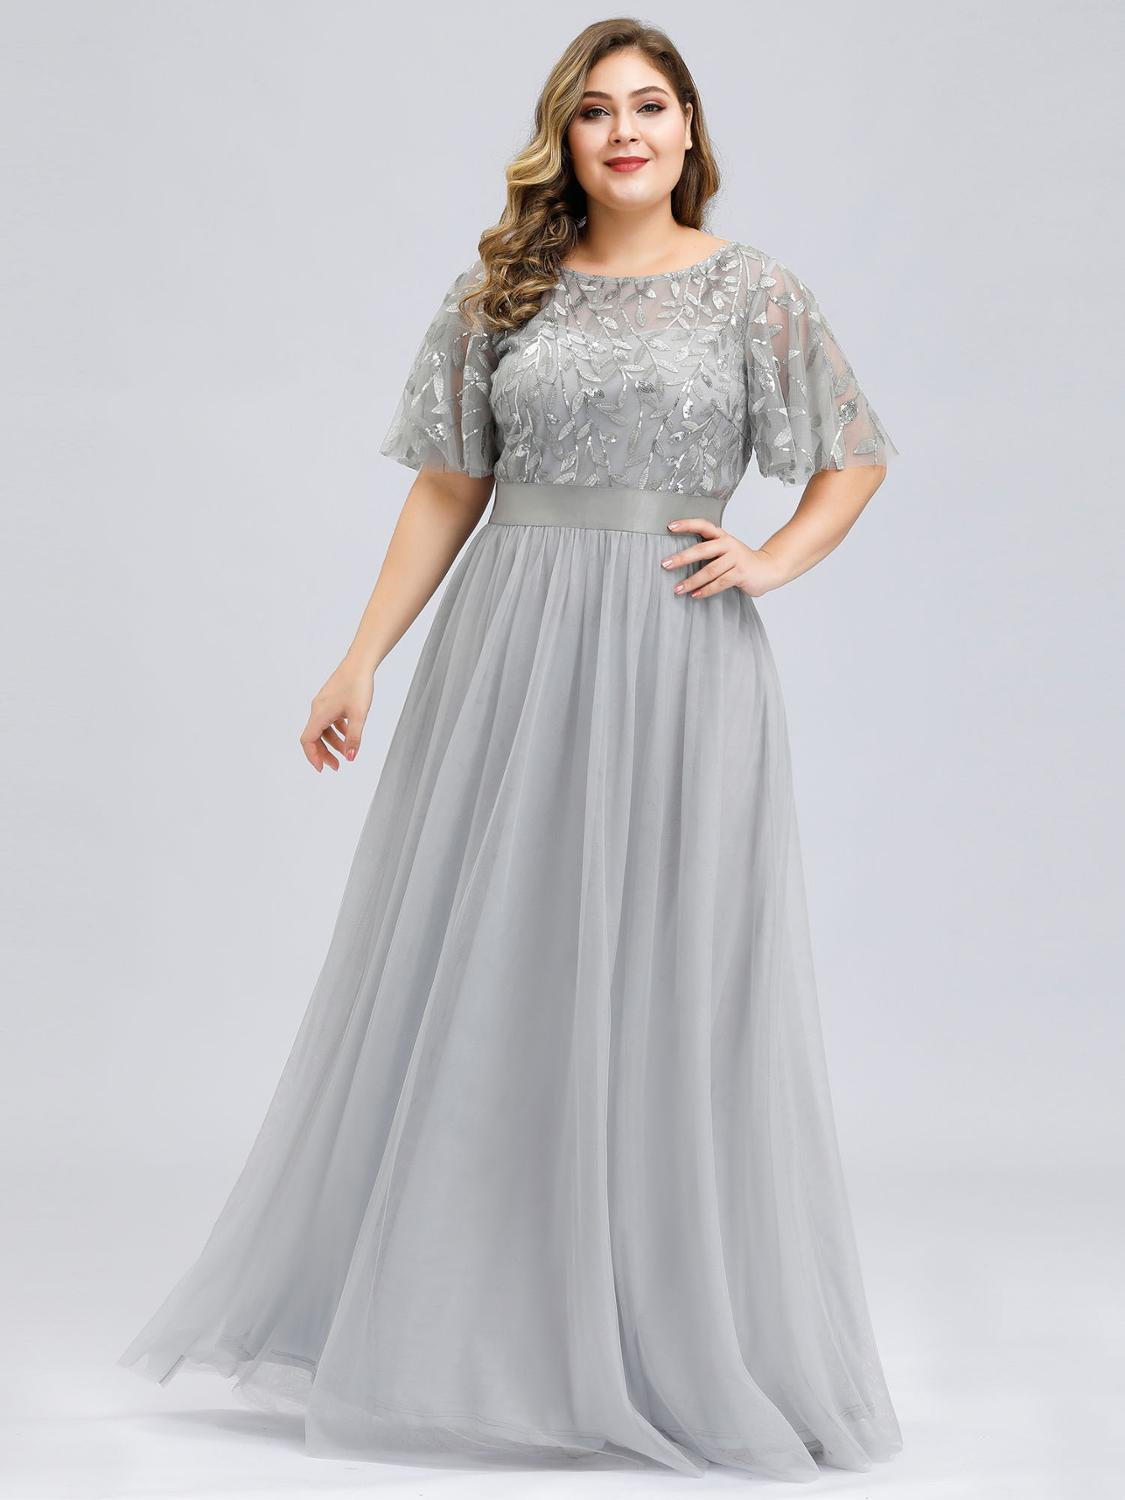 Evening-Dresses Sequined Tulle Ever Pretty A-Line Vestido Elegante Formal Long Plus-Size